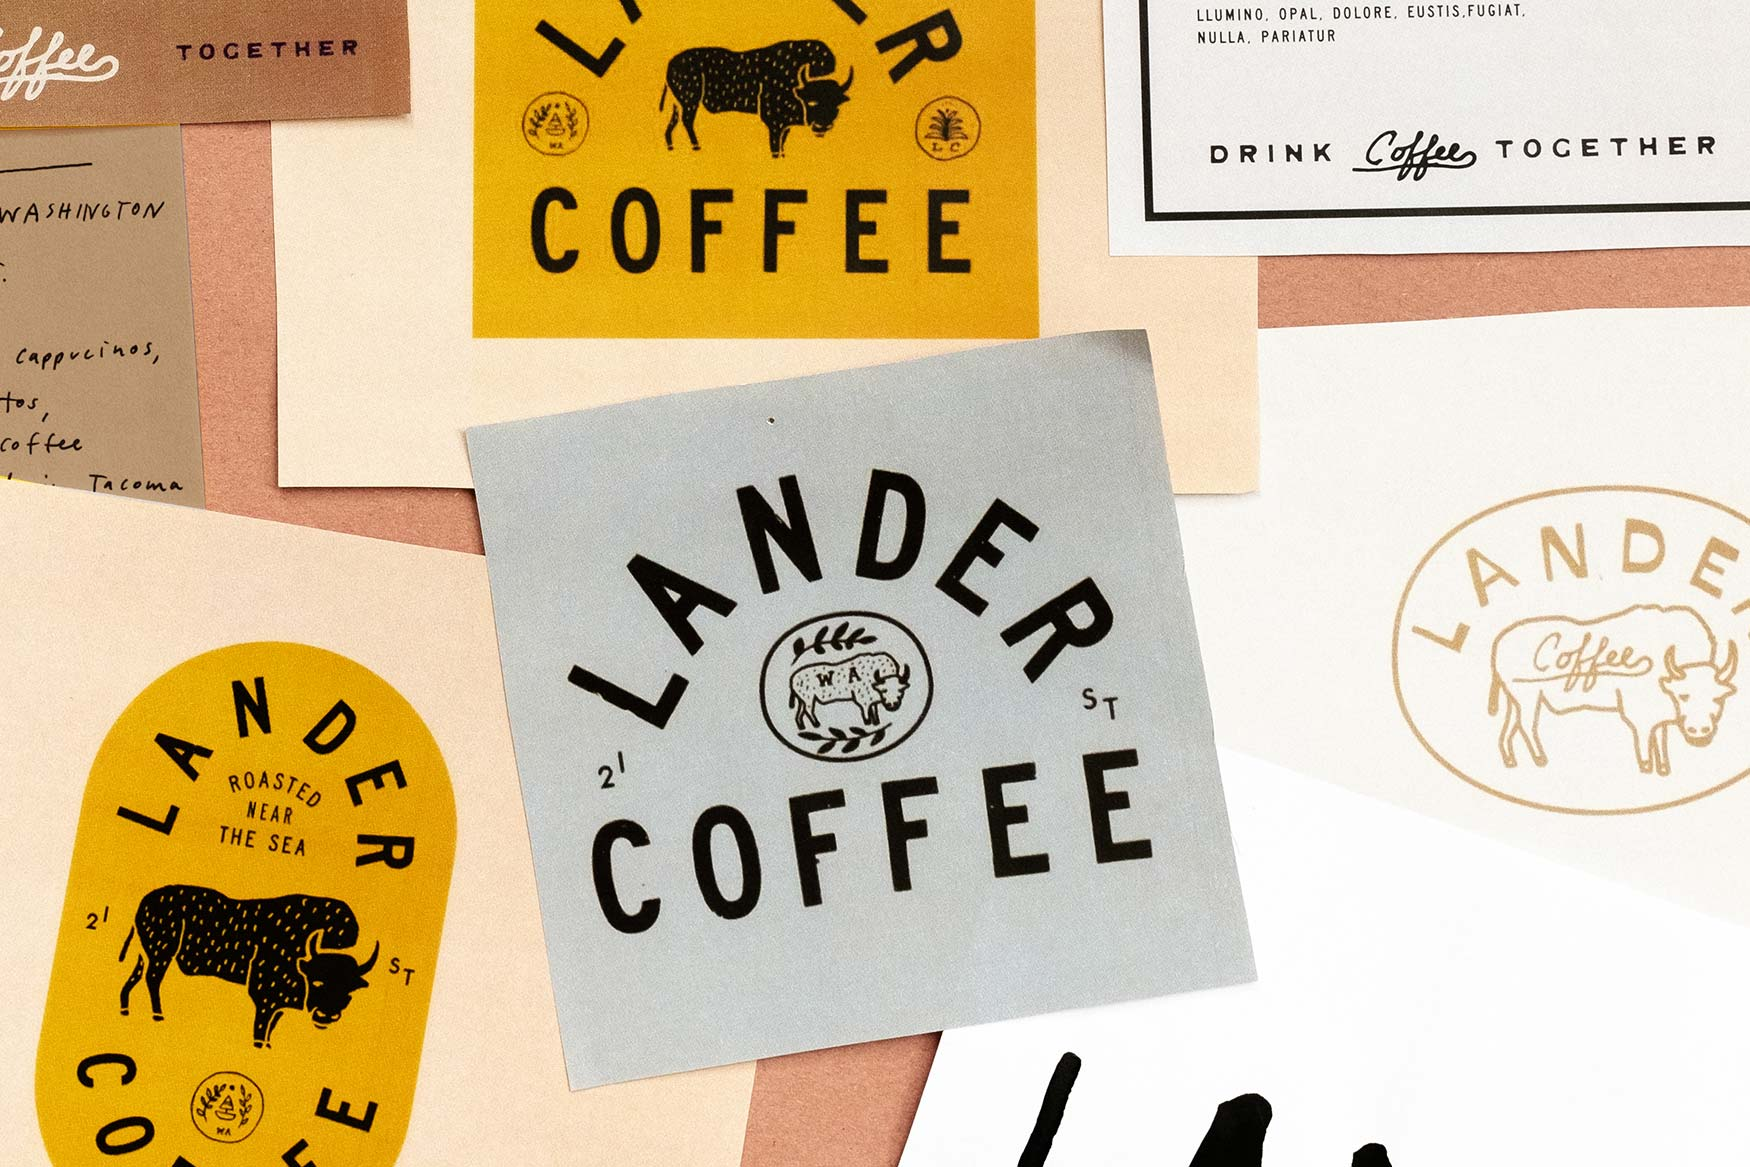 siotes-branding-coffee-lander-product-pattern-design-seattle-tacoma-studio-kids-espresso-2